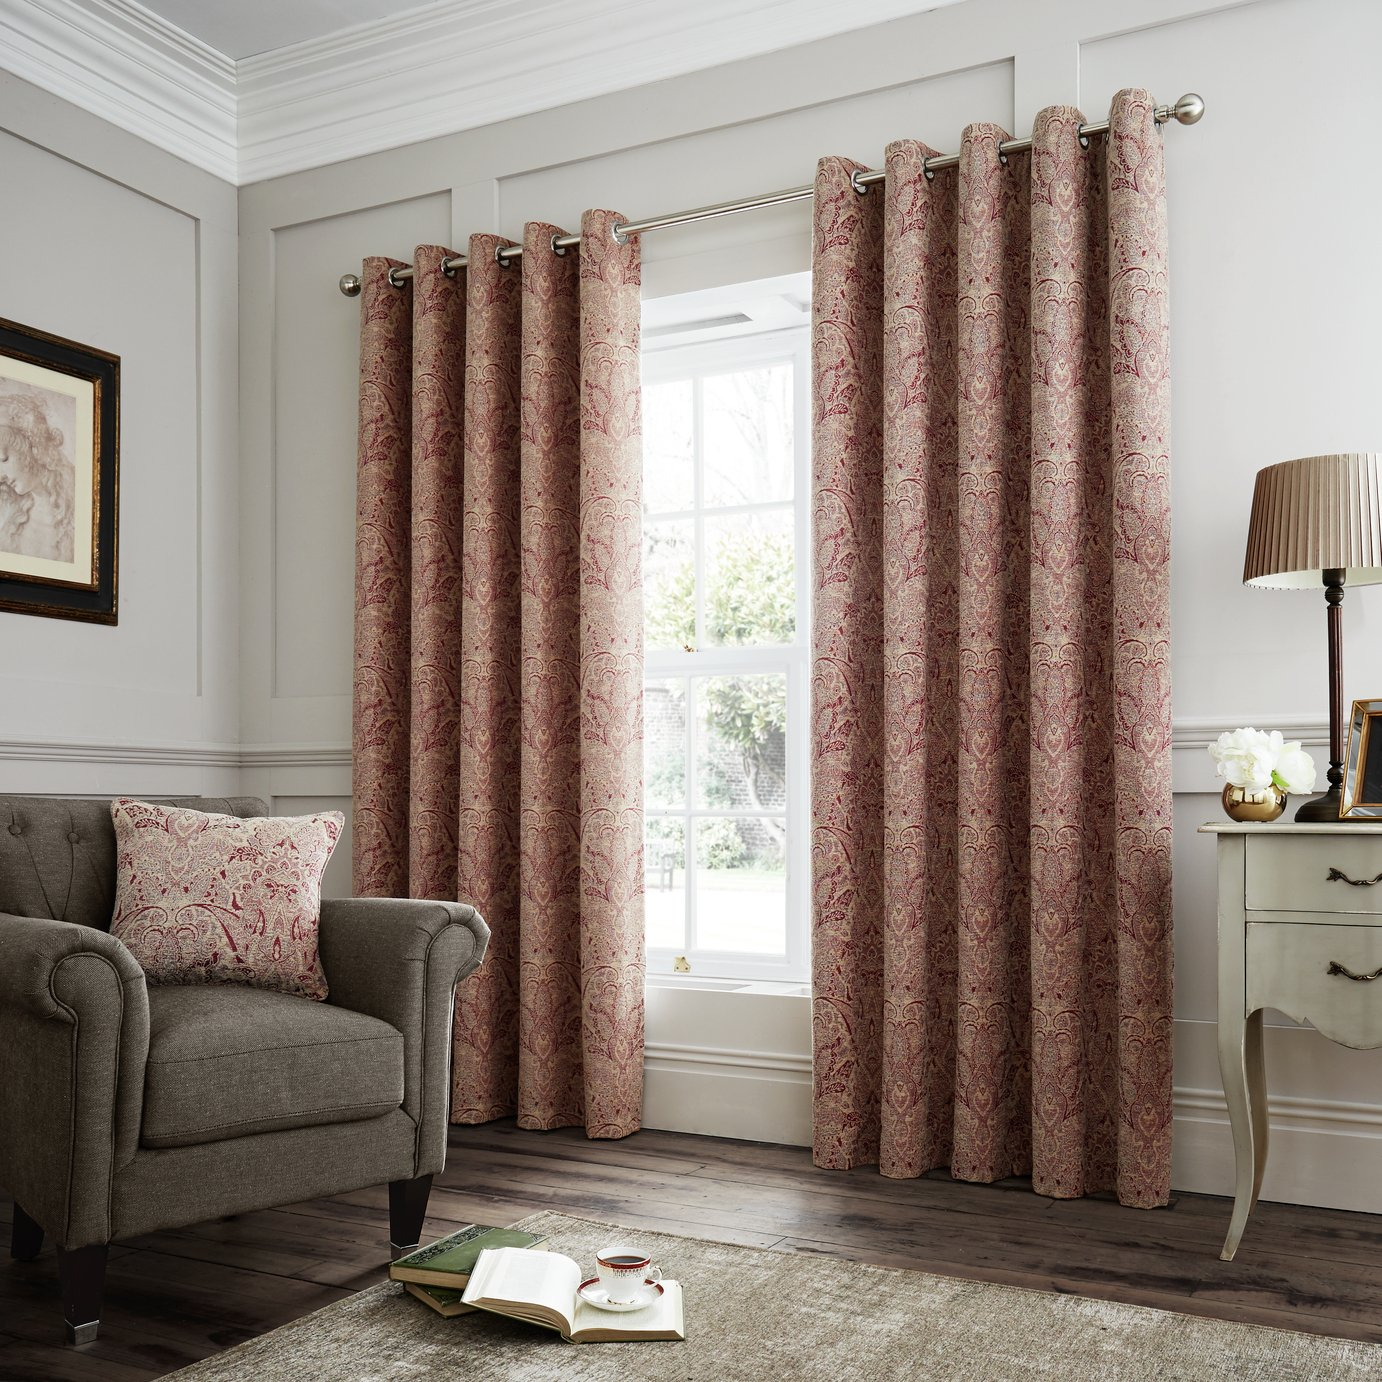 Curtina Whitcliffe Lined Eyelet Curtains - 229x229cm - Multi